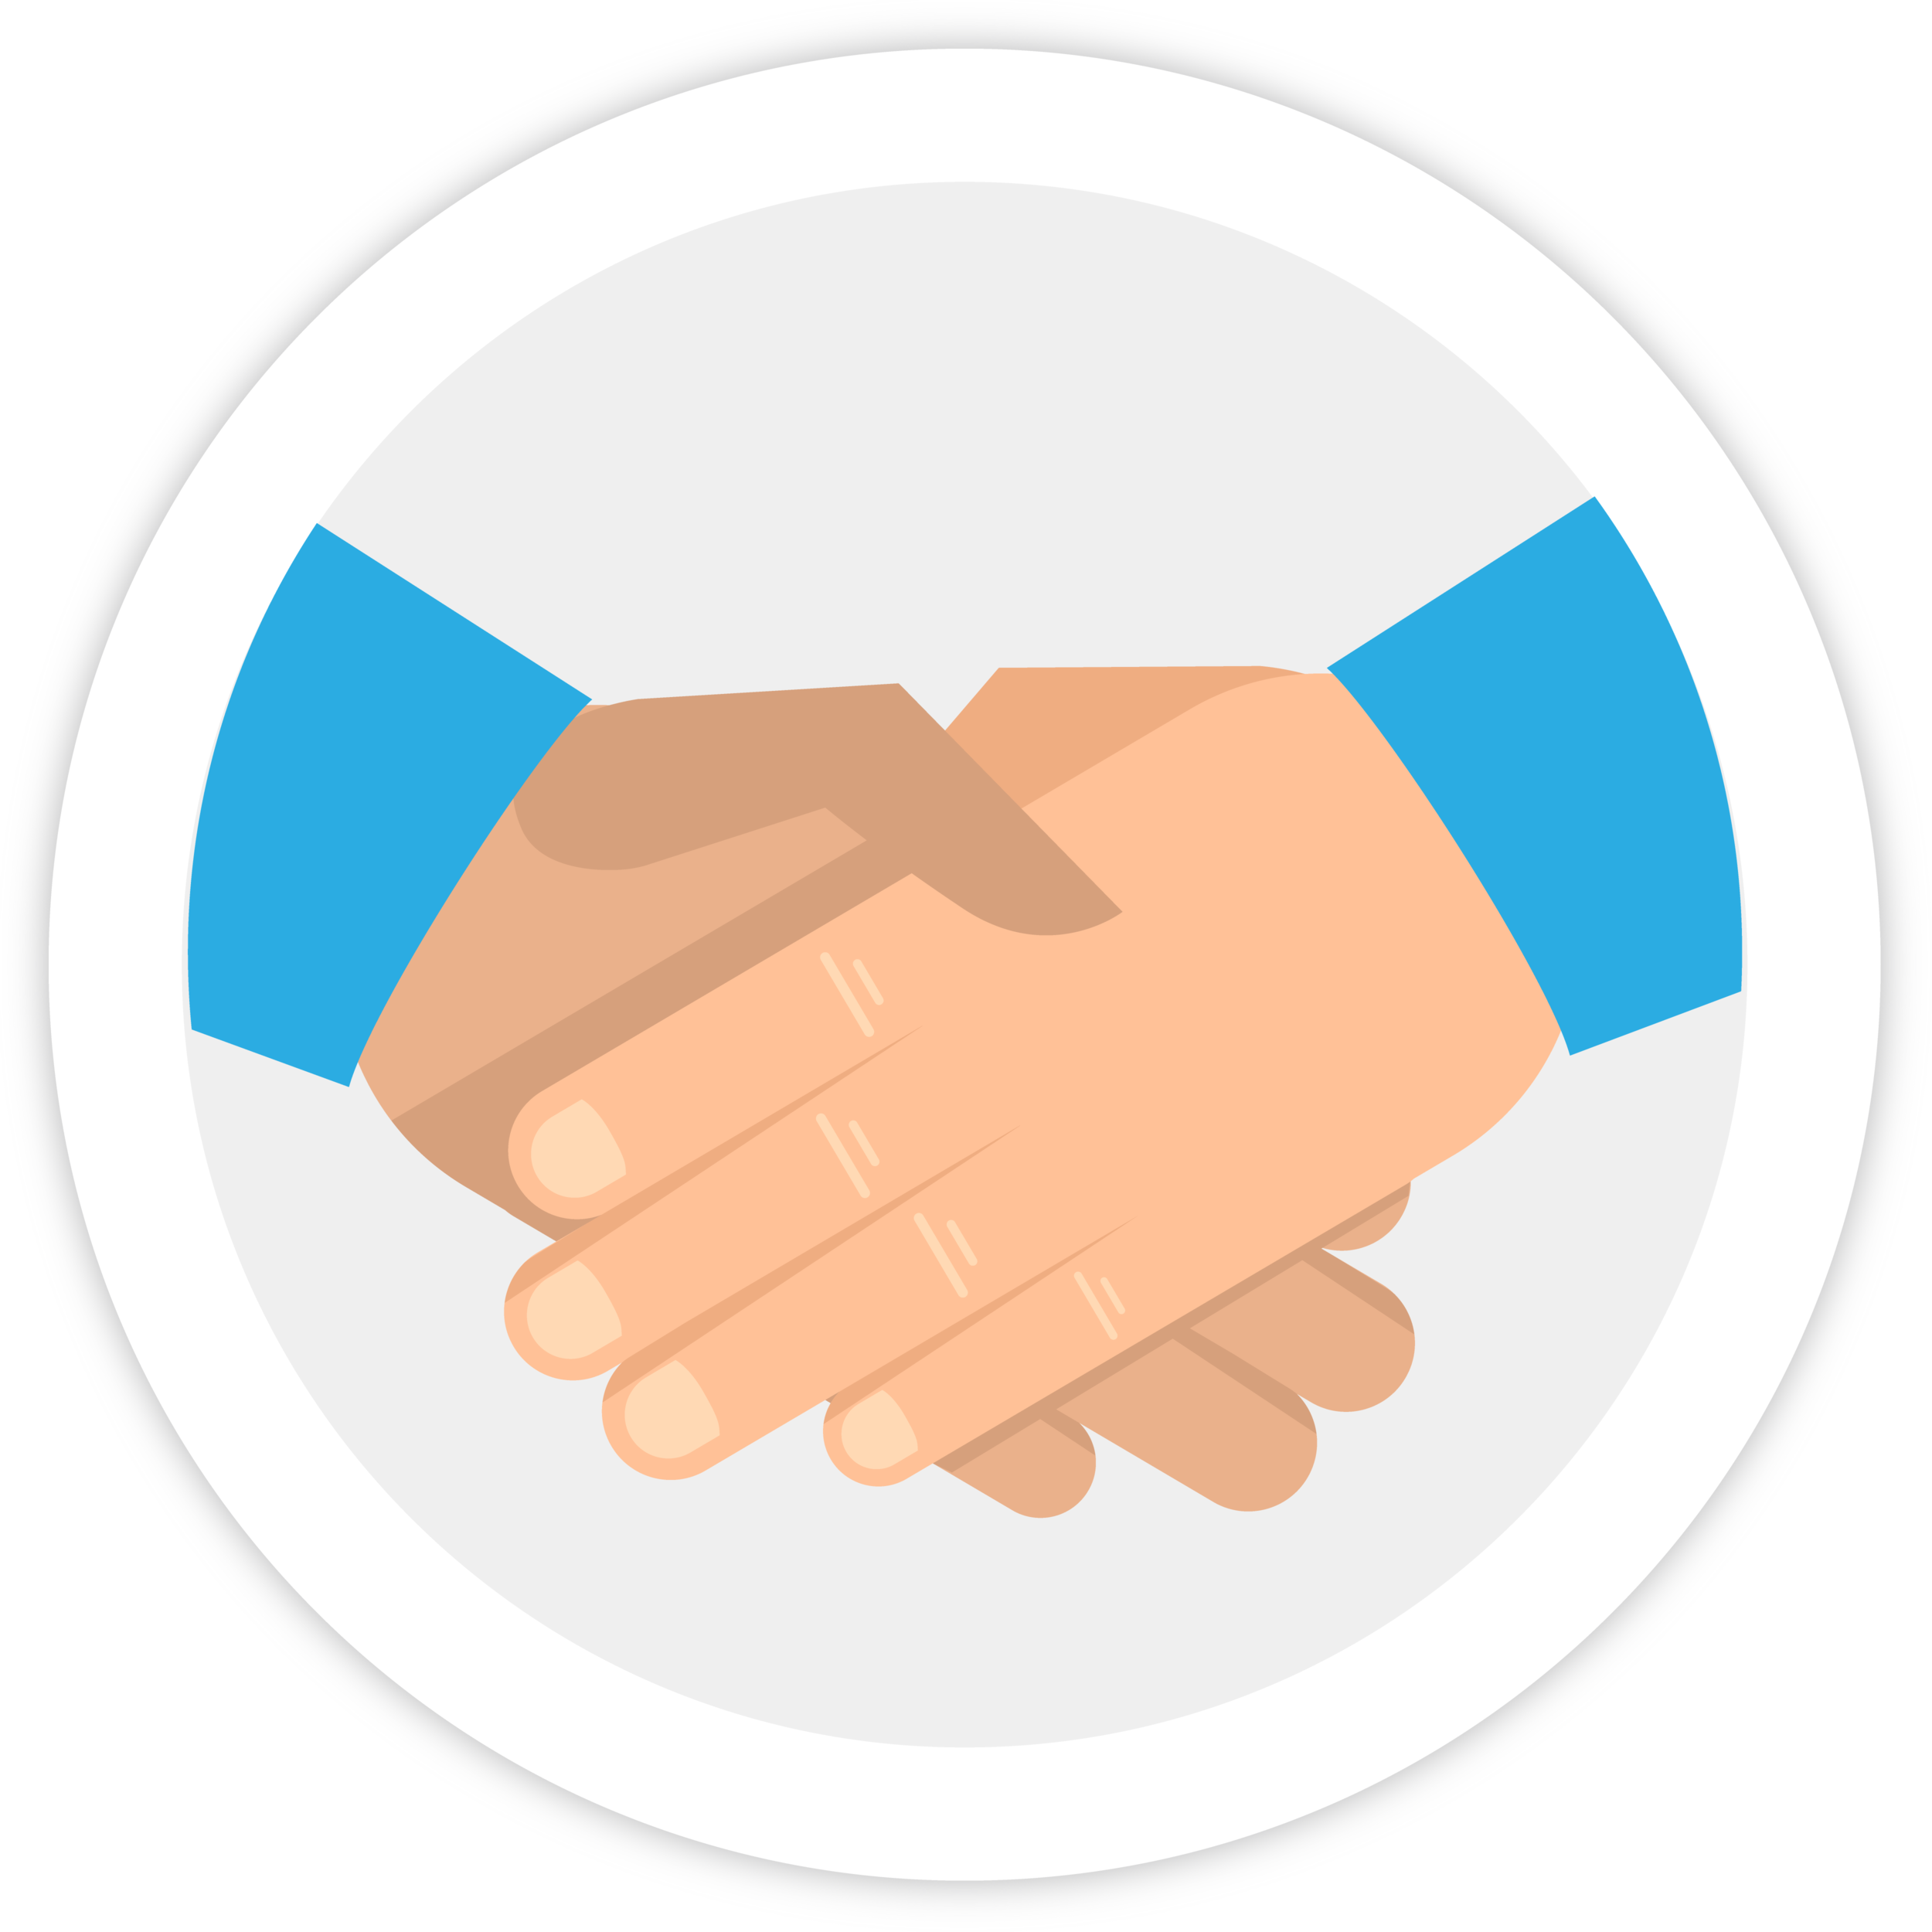 Illustration of a handshake, indicating the partnership between Bezlio and other ERP/CRM solution providers.